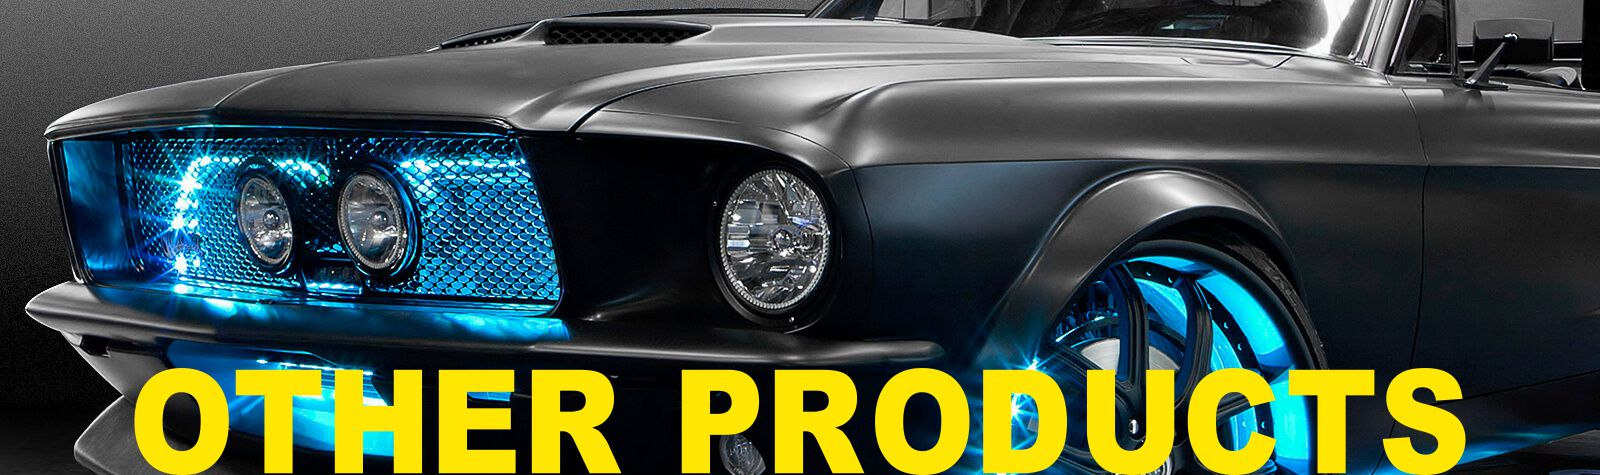 car audio products banner